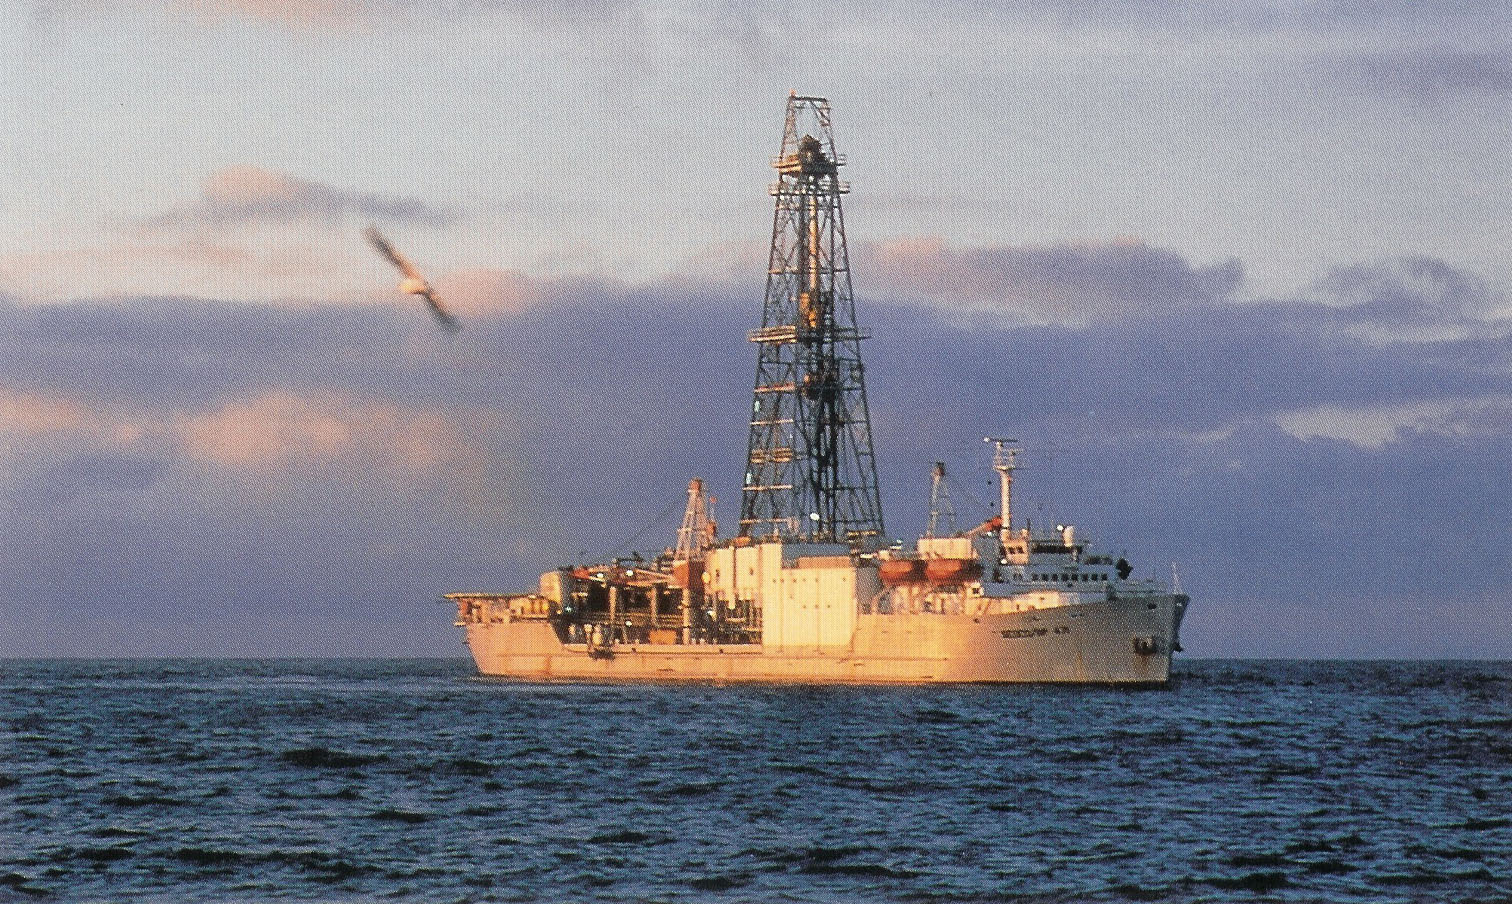 Deep-Sea Drilling Safety